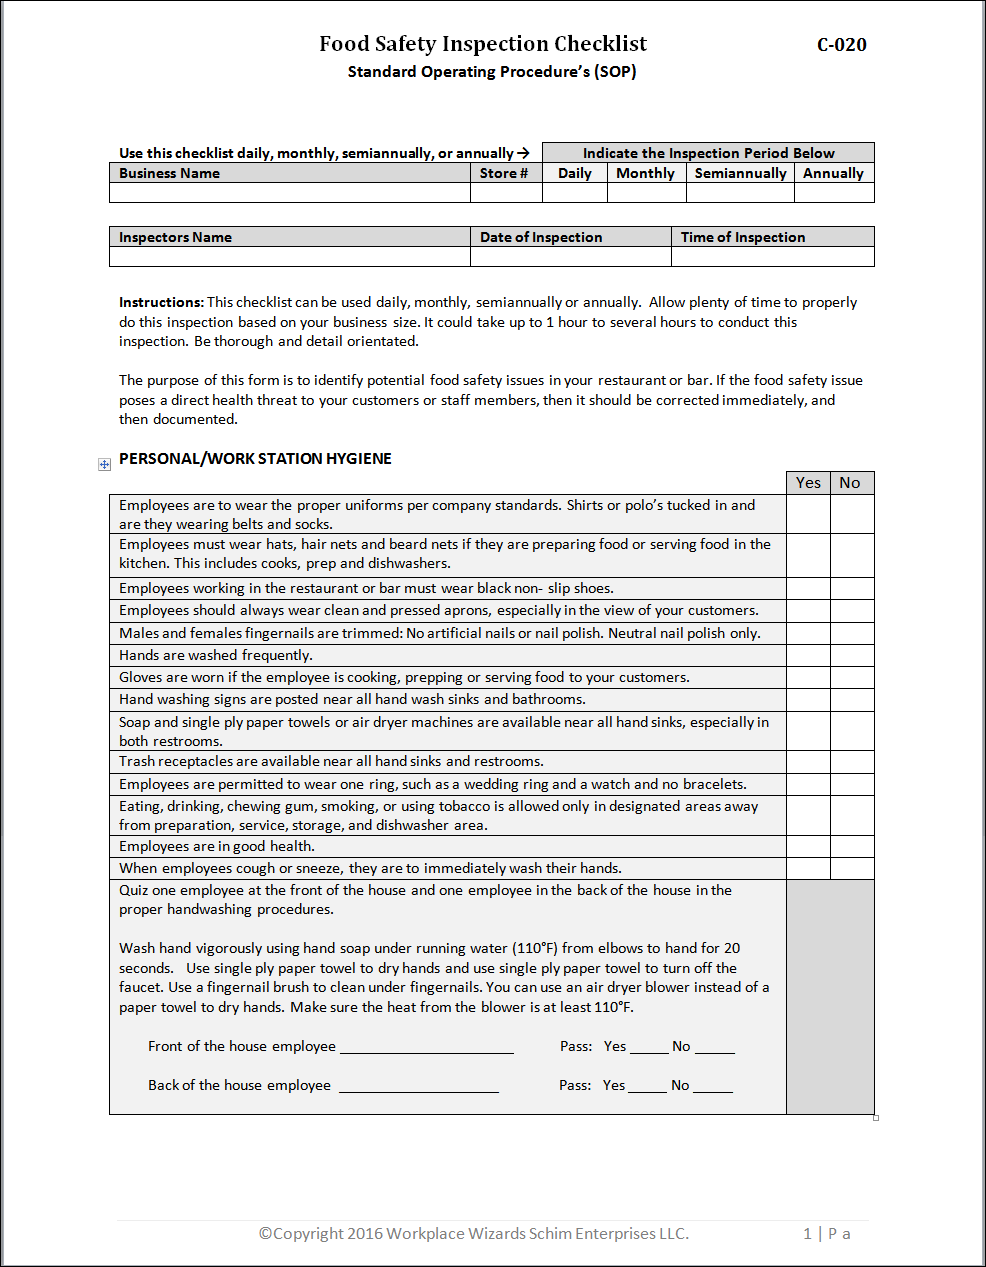 Restaurant Kitchen Management new cumberland, pennsylvania -restaurant management forms